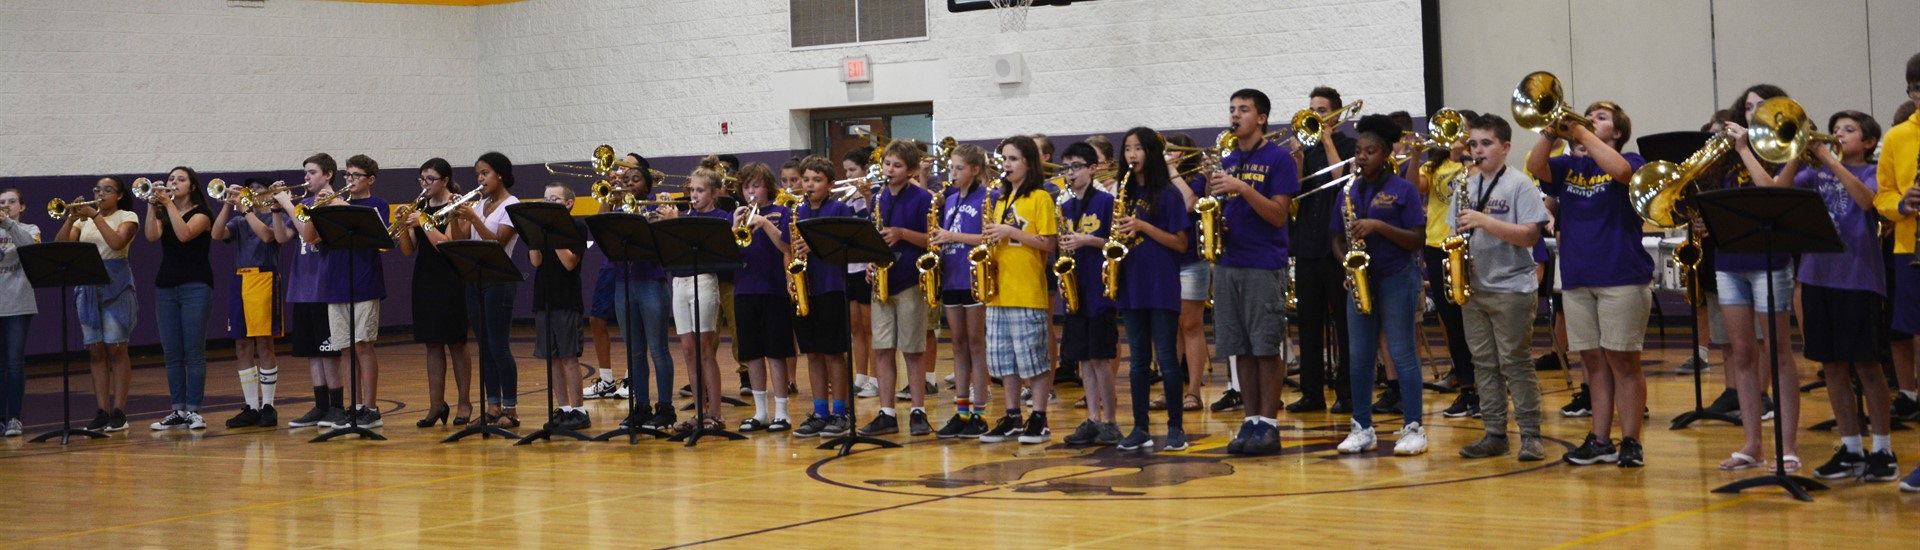 Middle School band at ice cream social